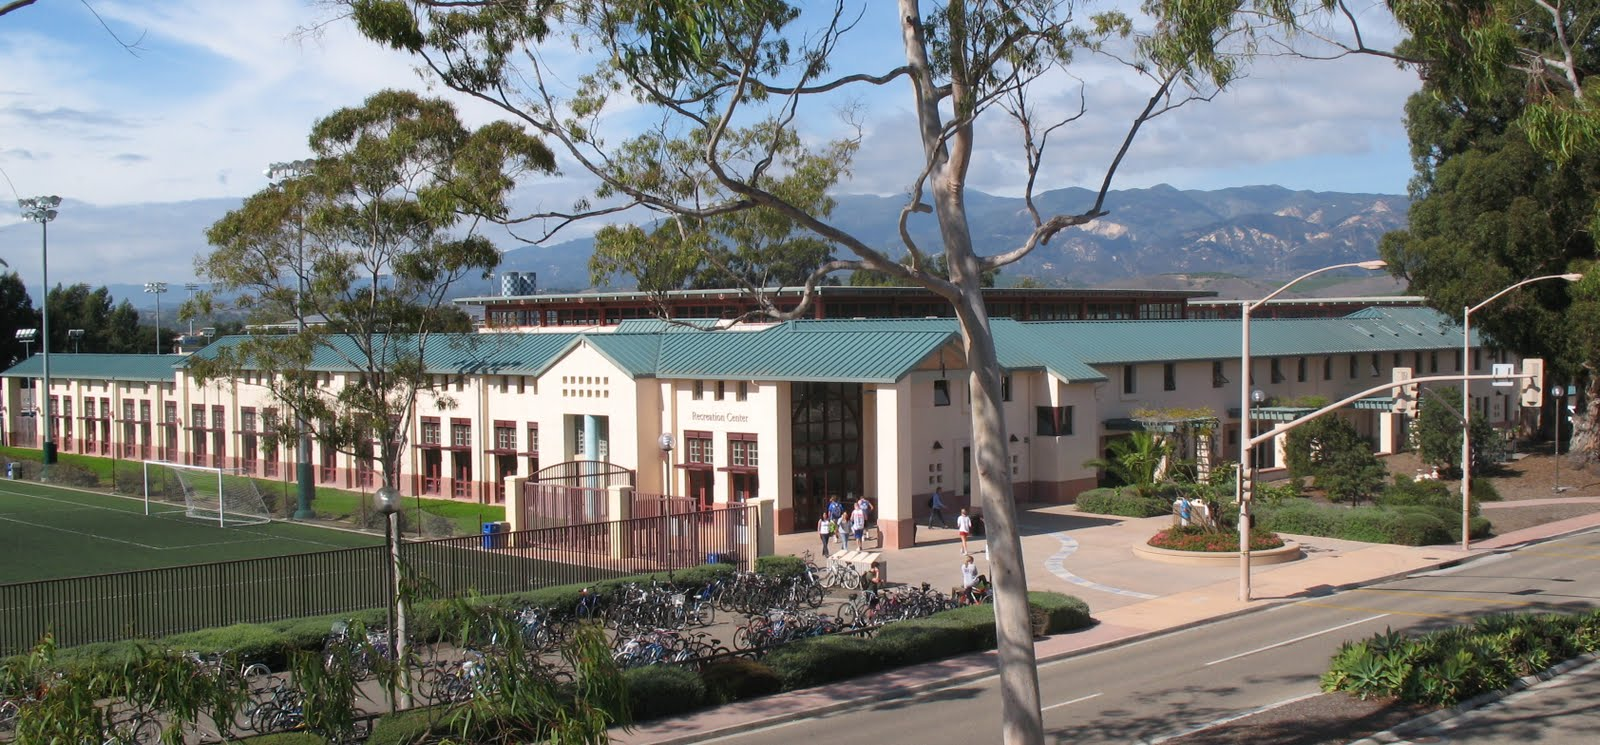 Innovative Workshop Consulting | Tiffany Beffel | Perrin Pellegrin | Projects |UCSB Recreation Center